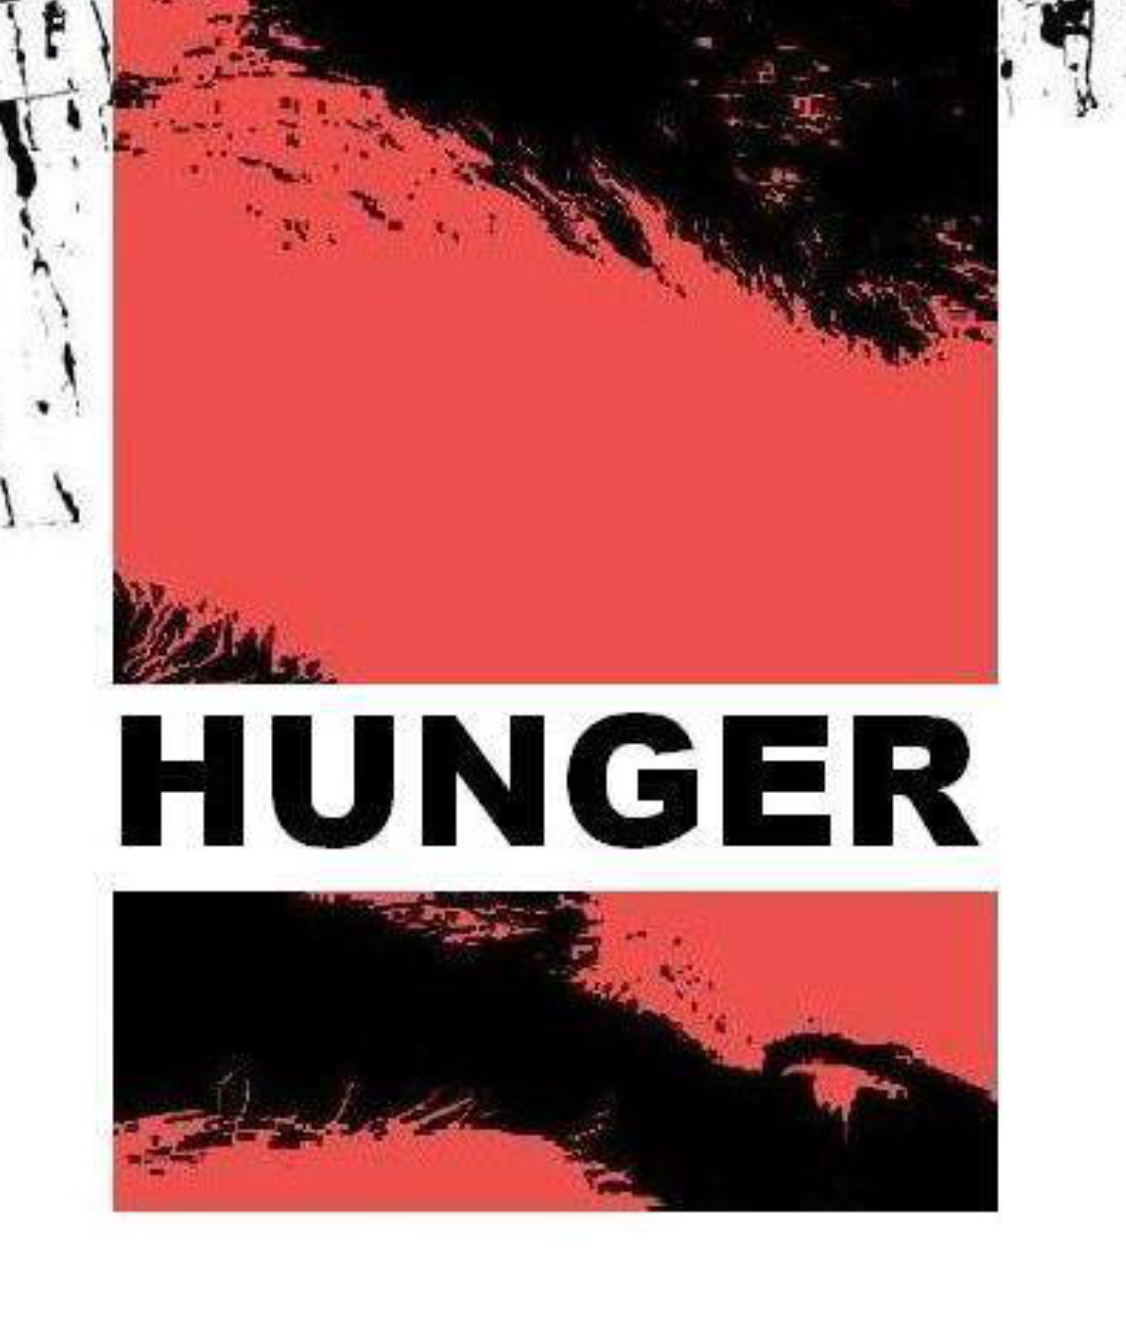 Hunger Title copy.jpg